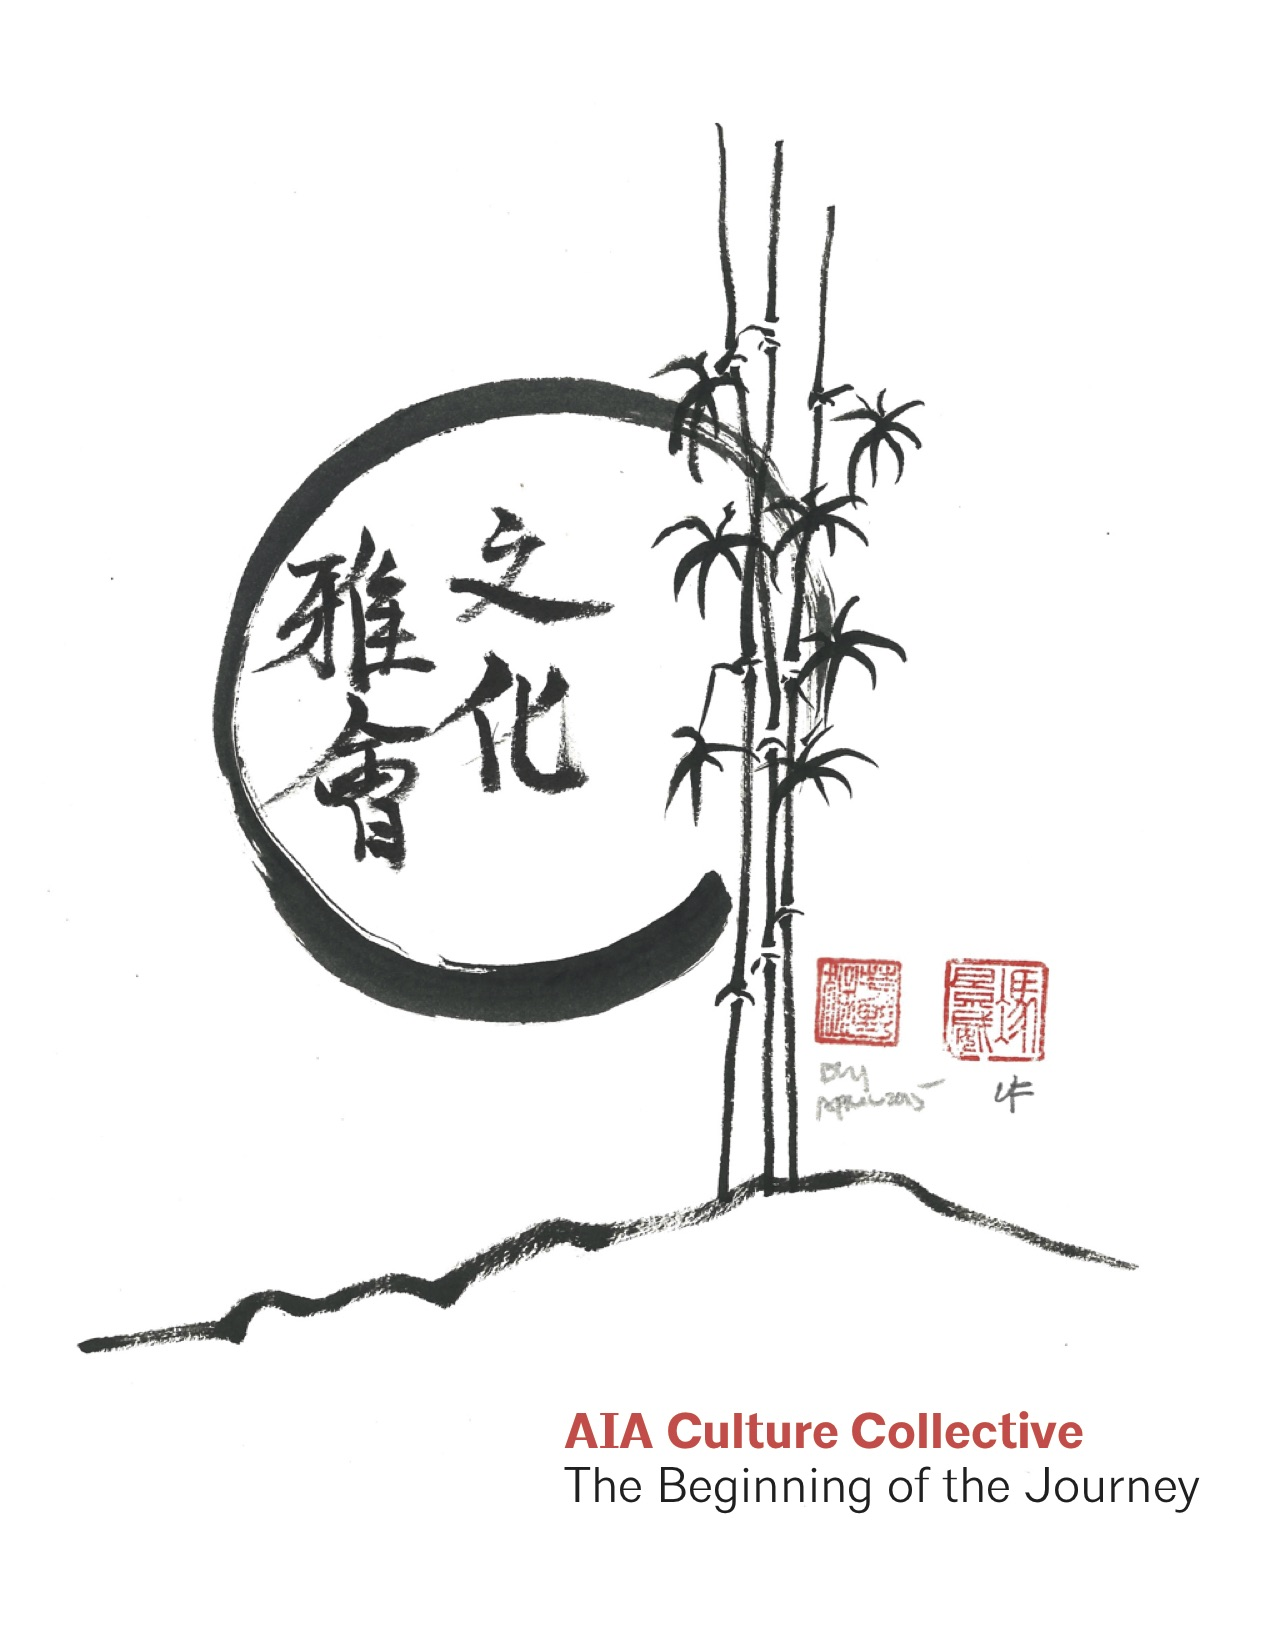 AIA Culture Collective.jpg